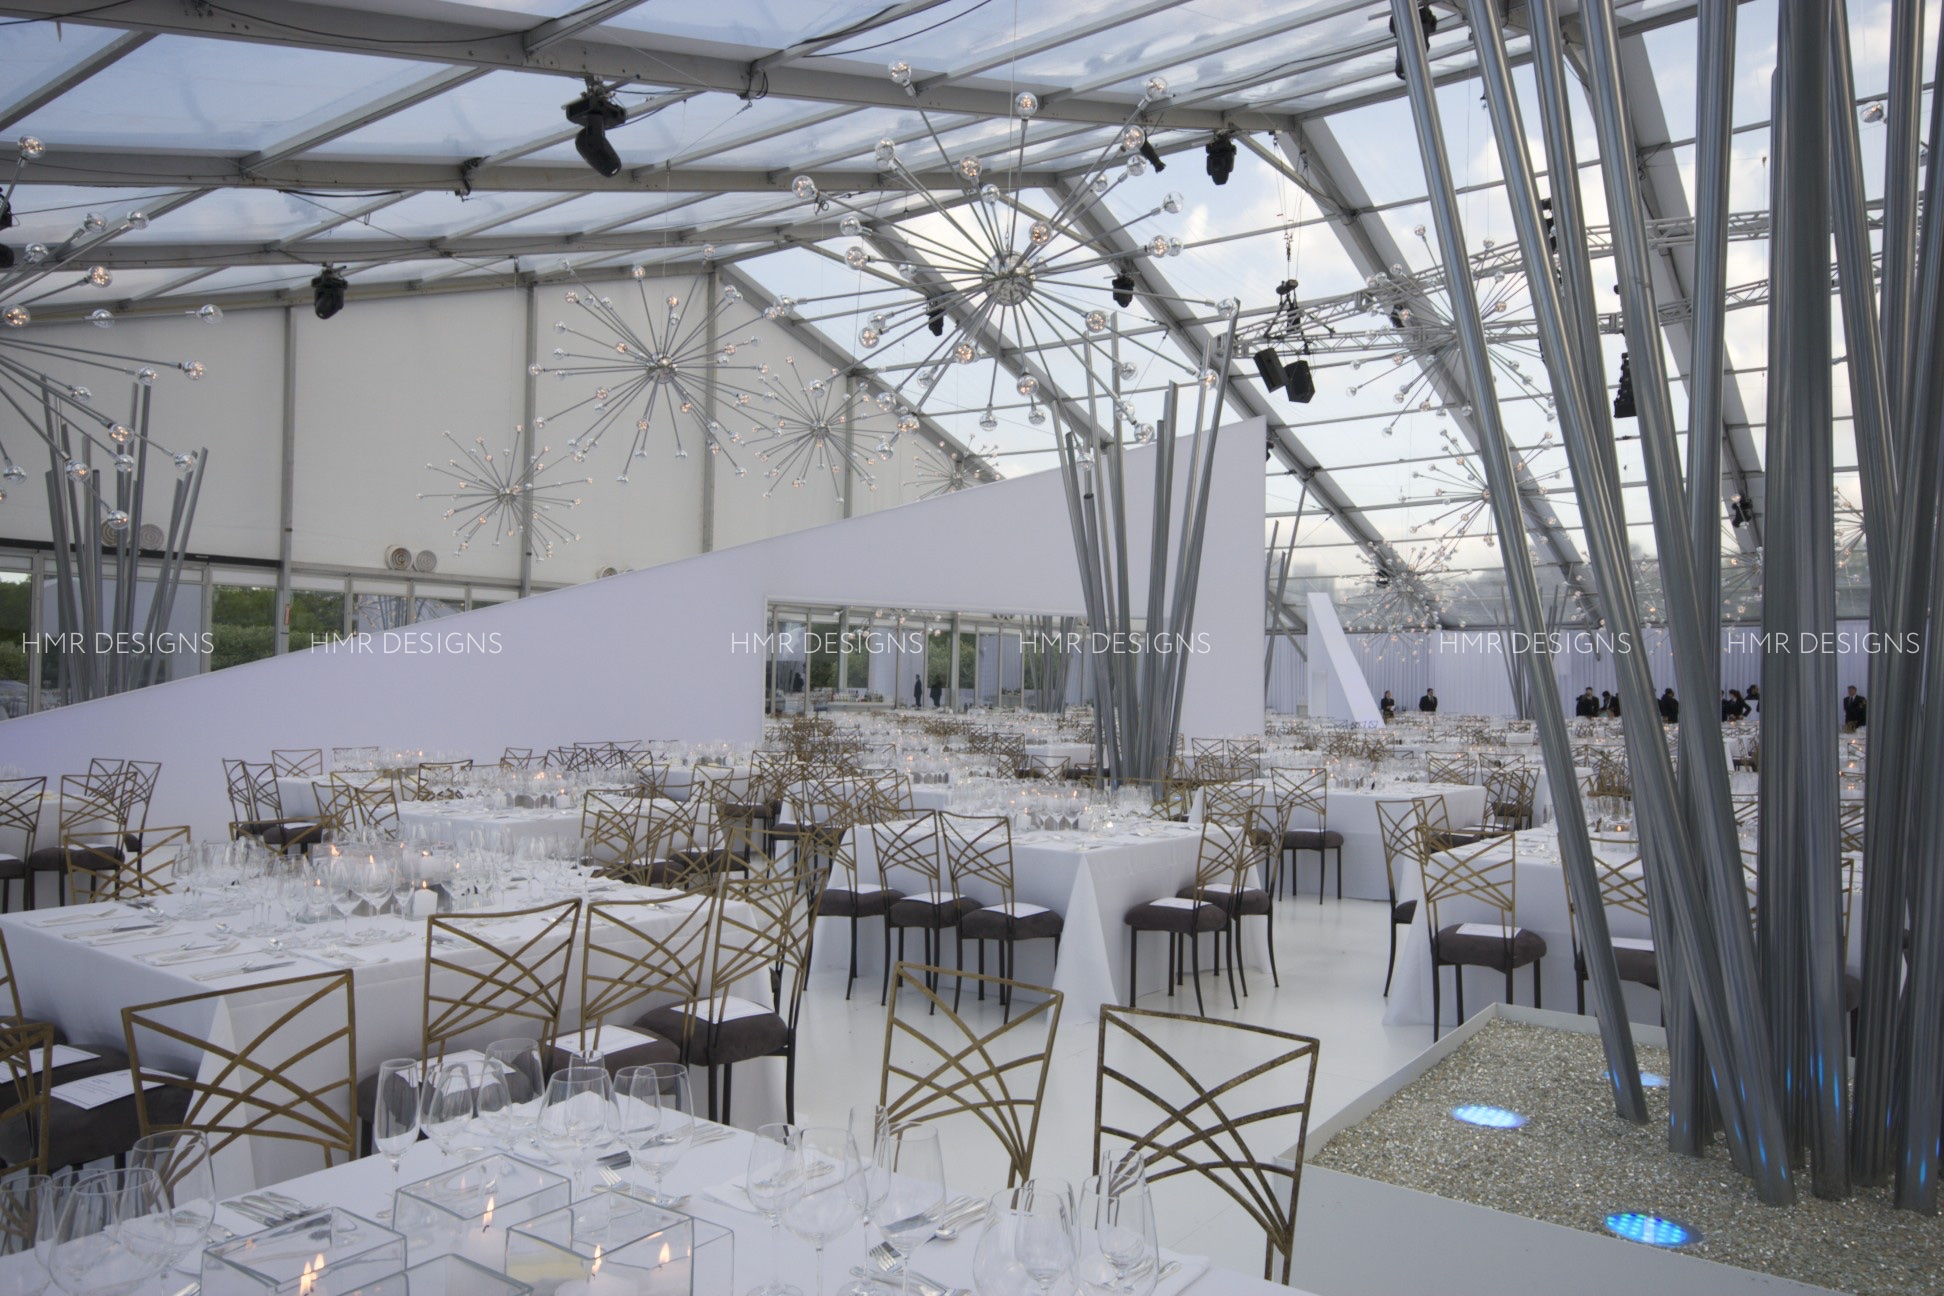 Stunning corporate event decor at the Modern Wing by HMR Designs